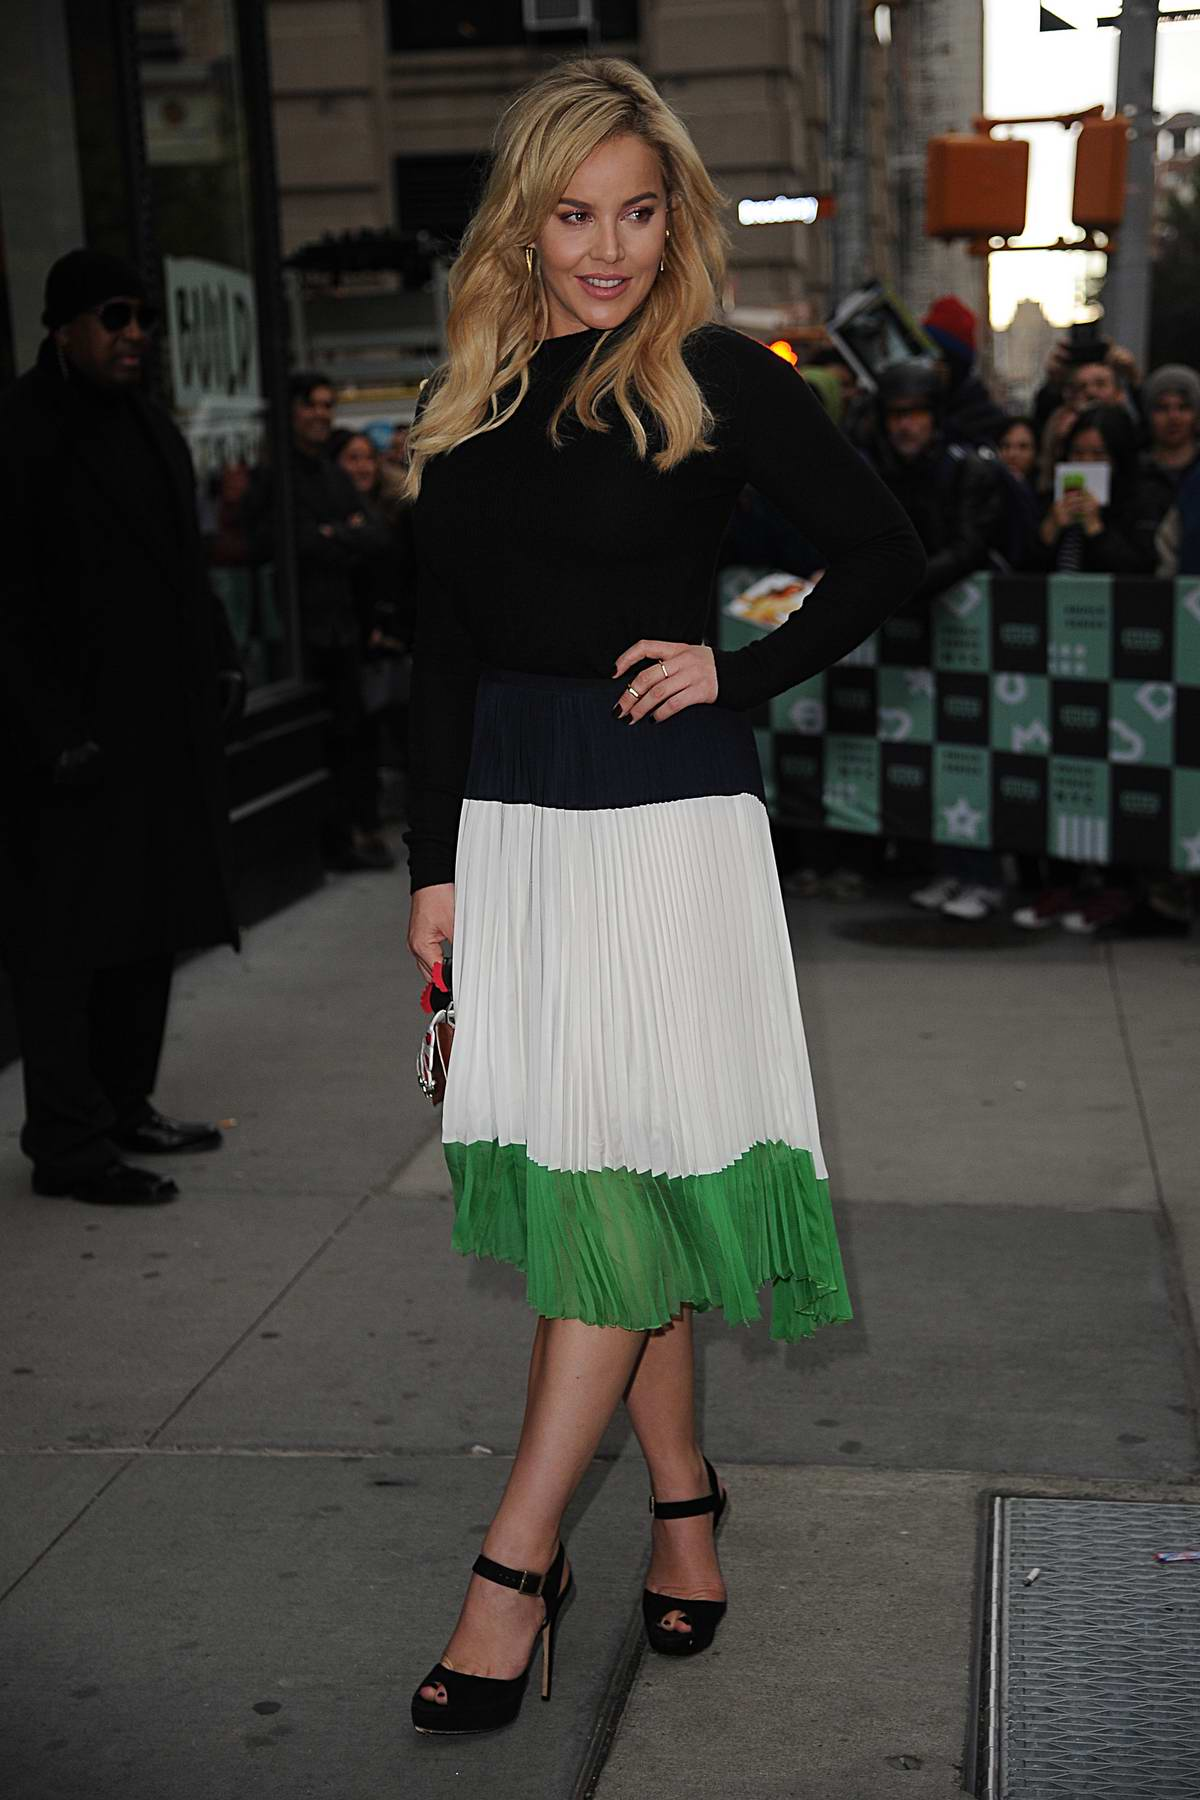 Abbie Cornish spotted outside at AOL Build Series in New York City